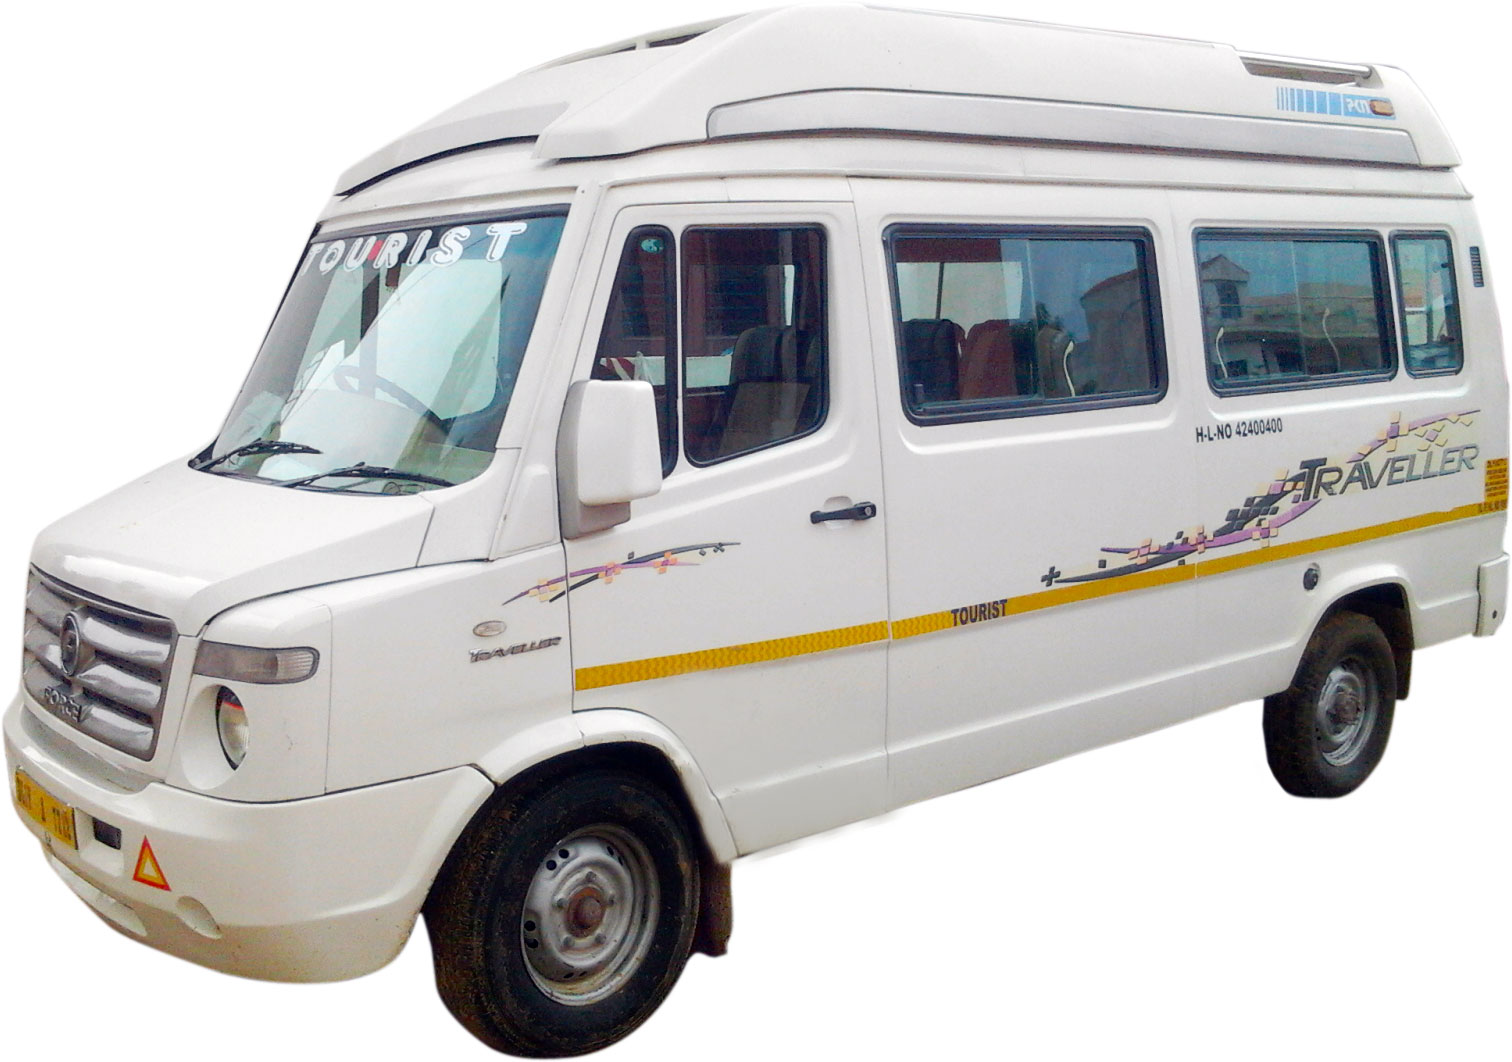 India Tours And Travels Bus